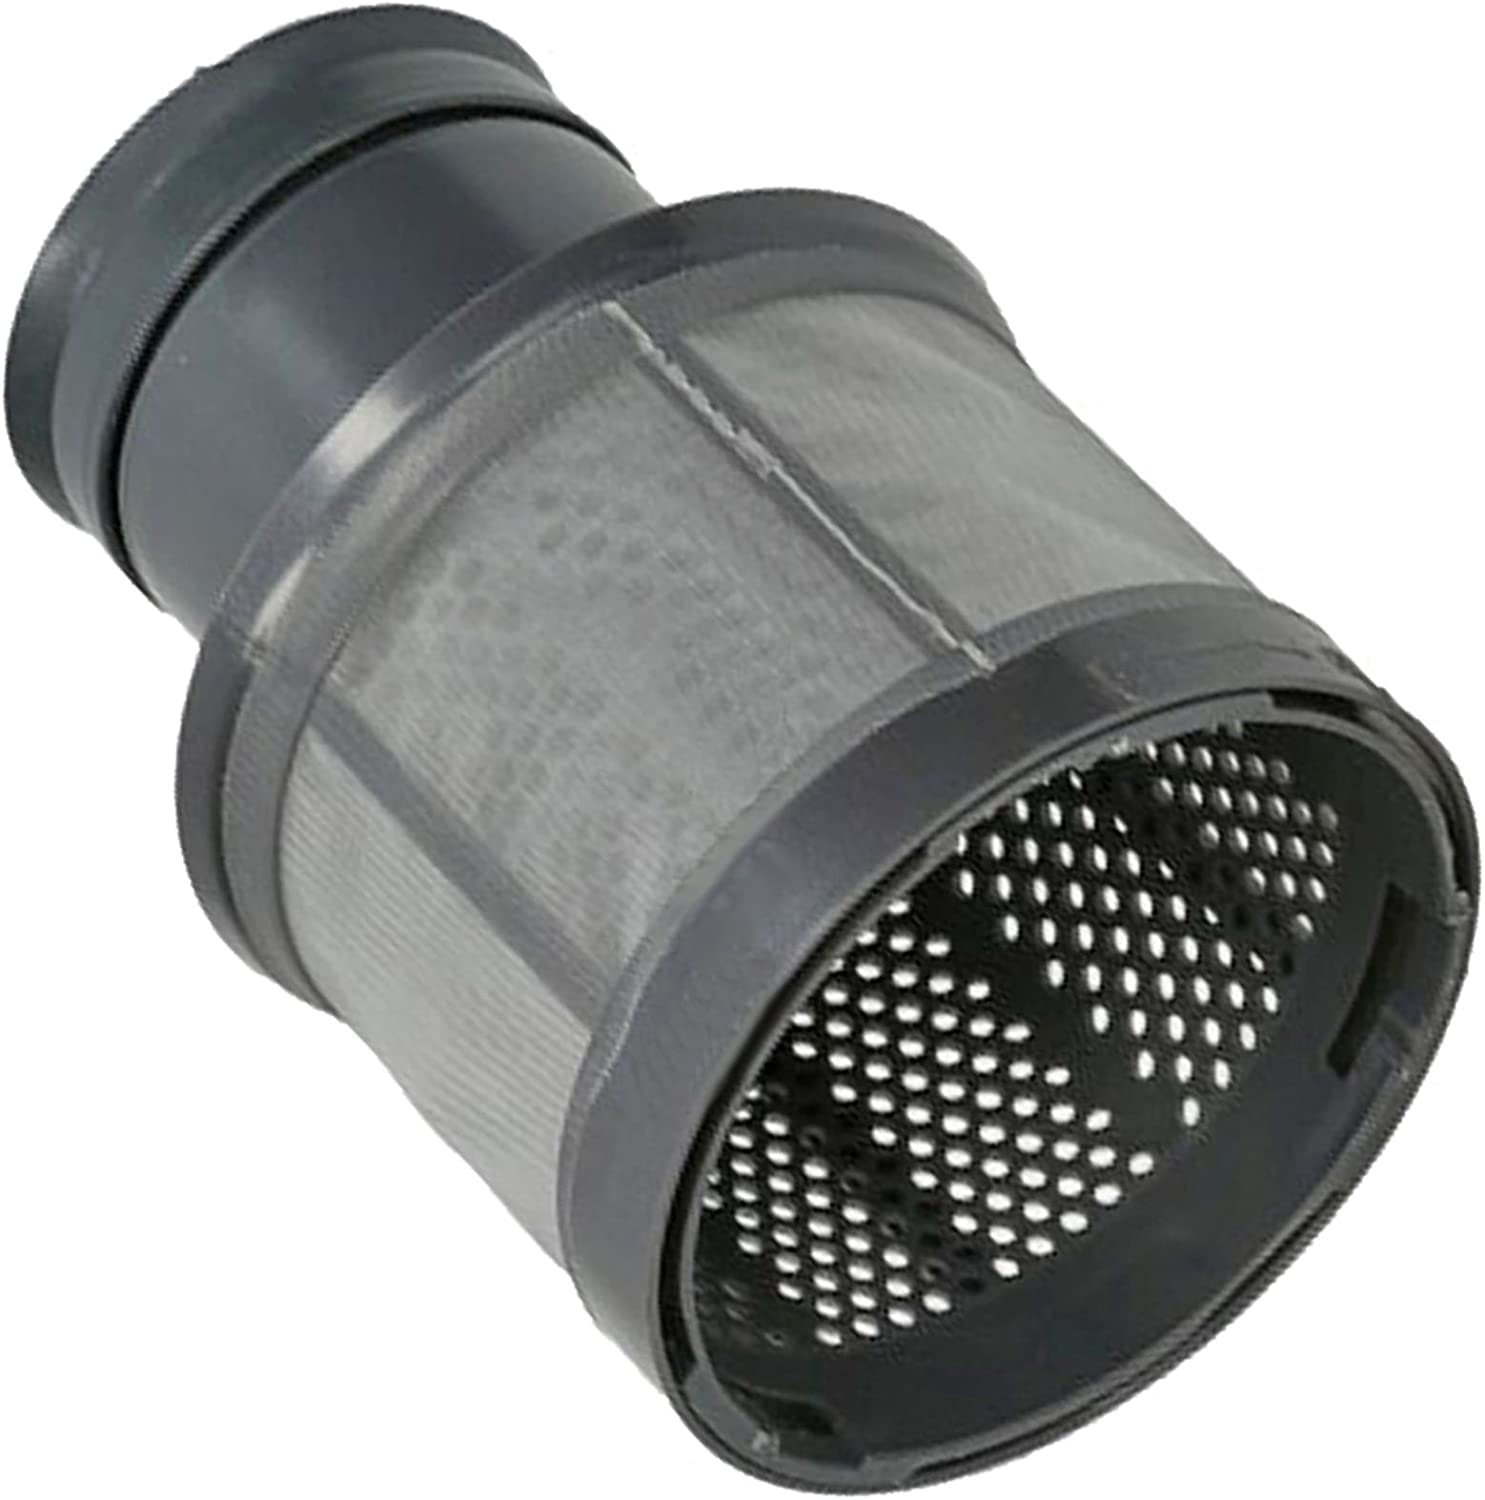 SPARES2GO T113 Type Post Motor Exhaust Filter Mesh Shroud for Hoover Freedom FD22 Series Vacuum Cleaner